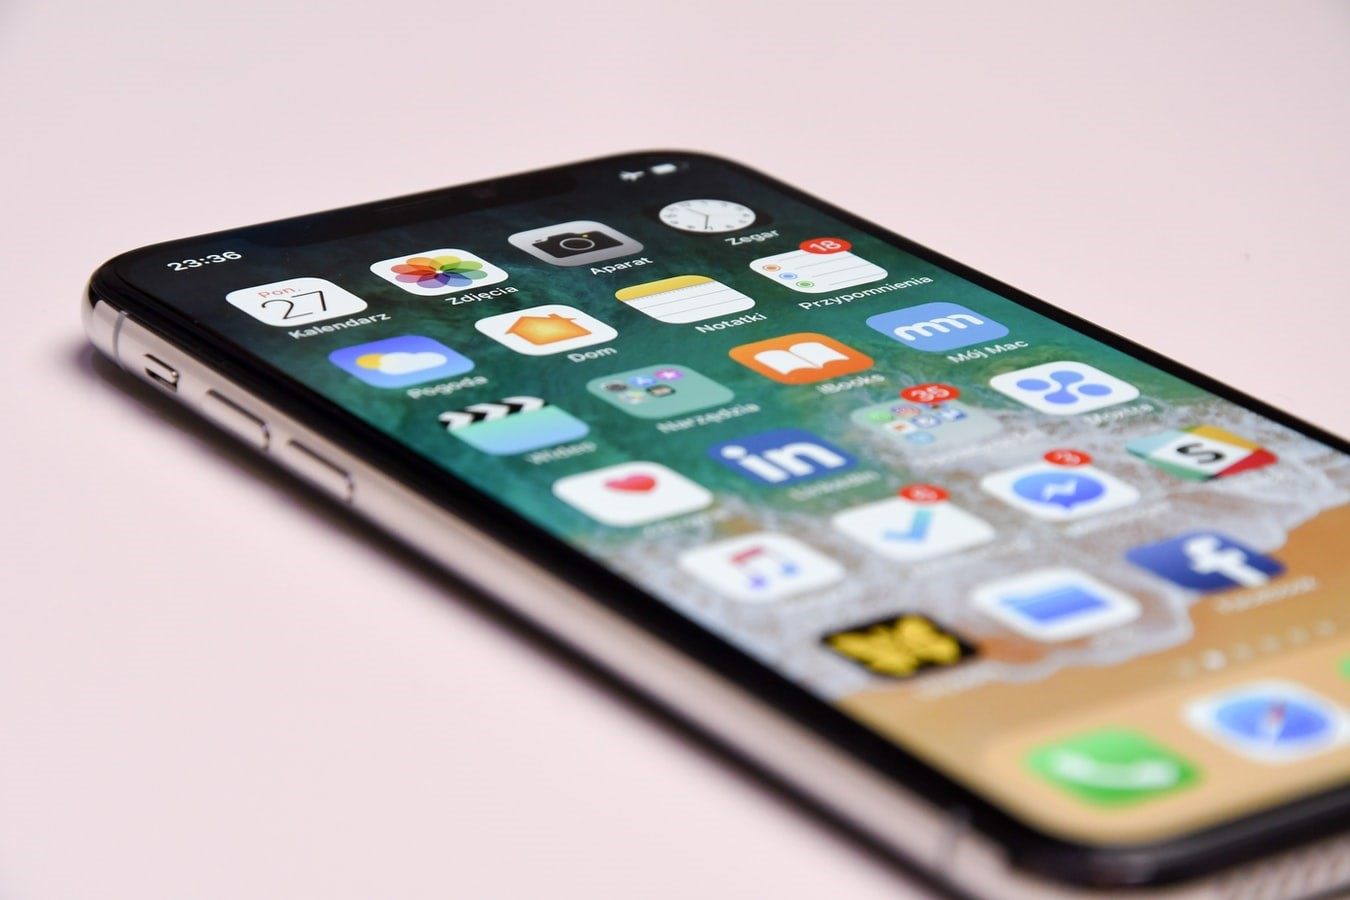 10 Easy Fixes For Common iPhone Problems